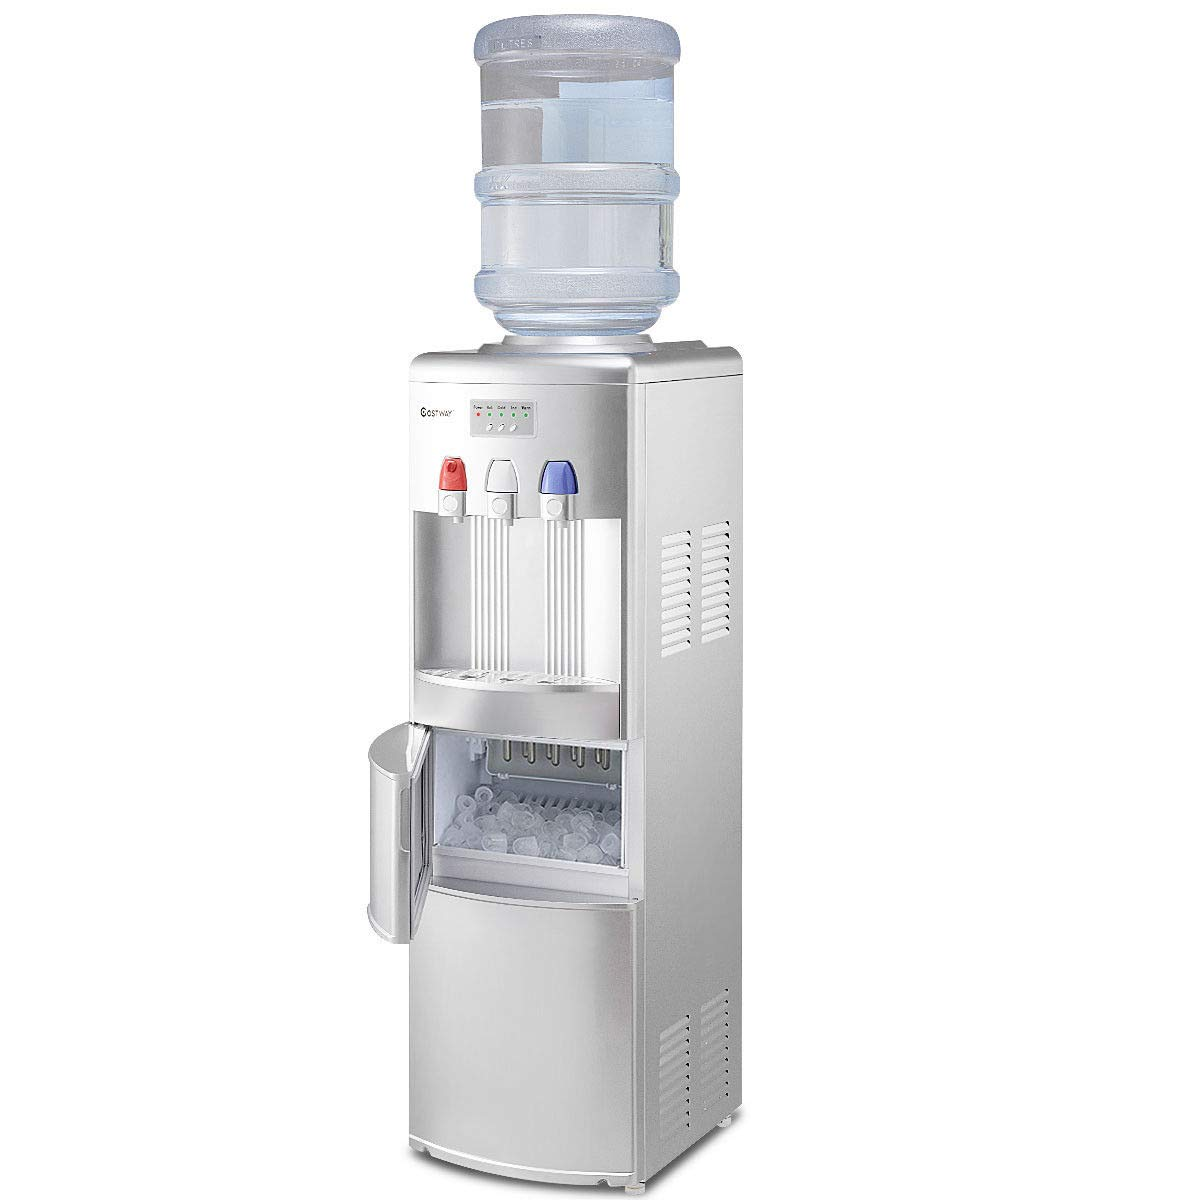 Costway 2-in-1 Water Cooler Dispenser with Built-in Ice Maker Freestanding Hot Cold Top Loading Water Dispenser 27LB/24H Ice Machine with Child Safety Lock, Silver by COSTWAY